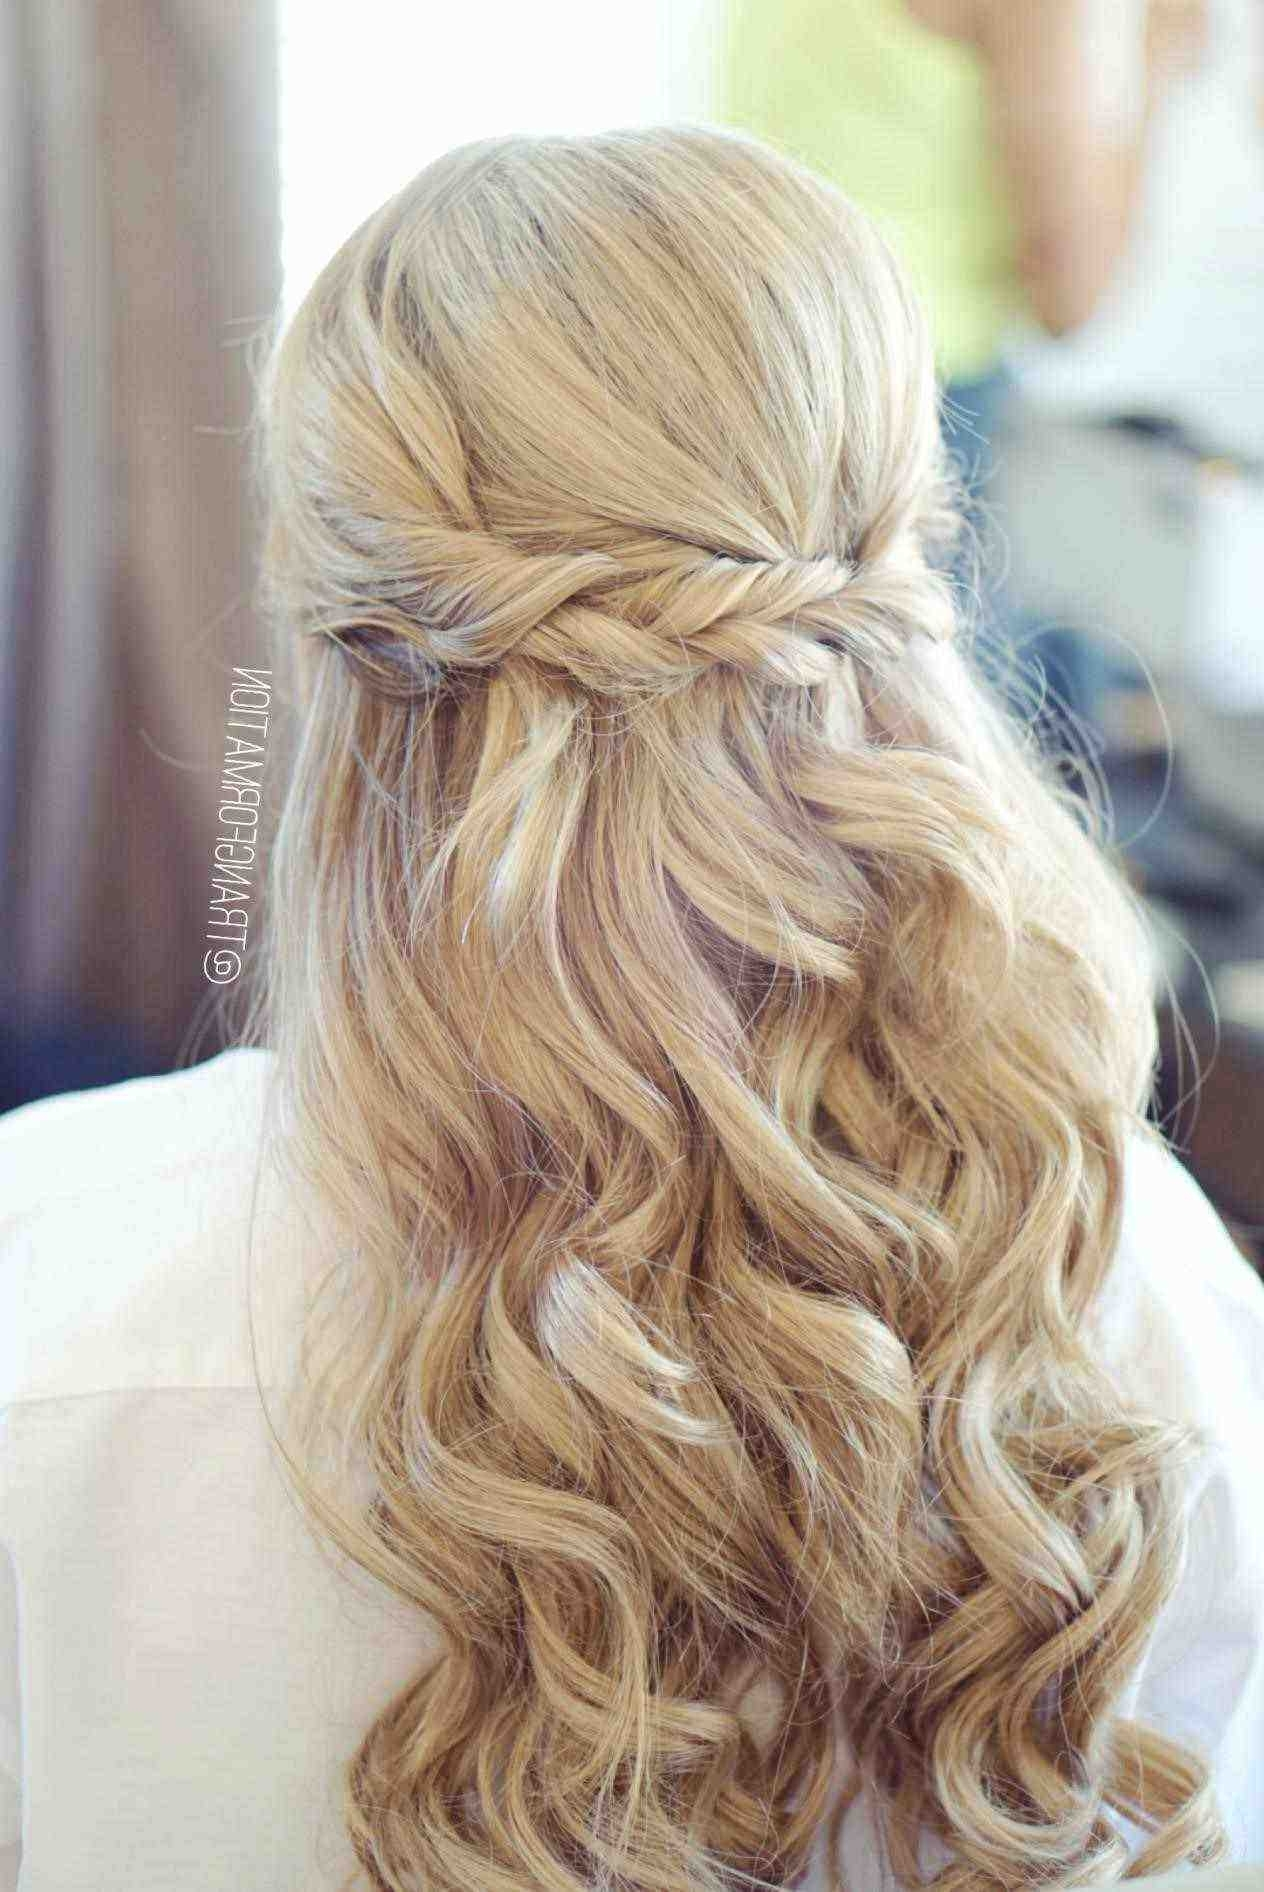 Mother Of The Bride Hairstyles For Short Hair Inspirational Bridal Throughout Most Recent Half Up Wedding Hairstyles For Bridesmaids (View 9 of 15)